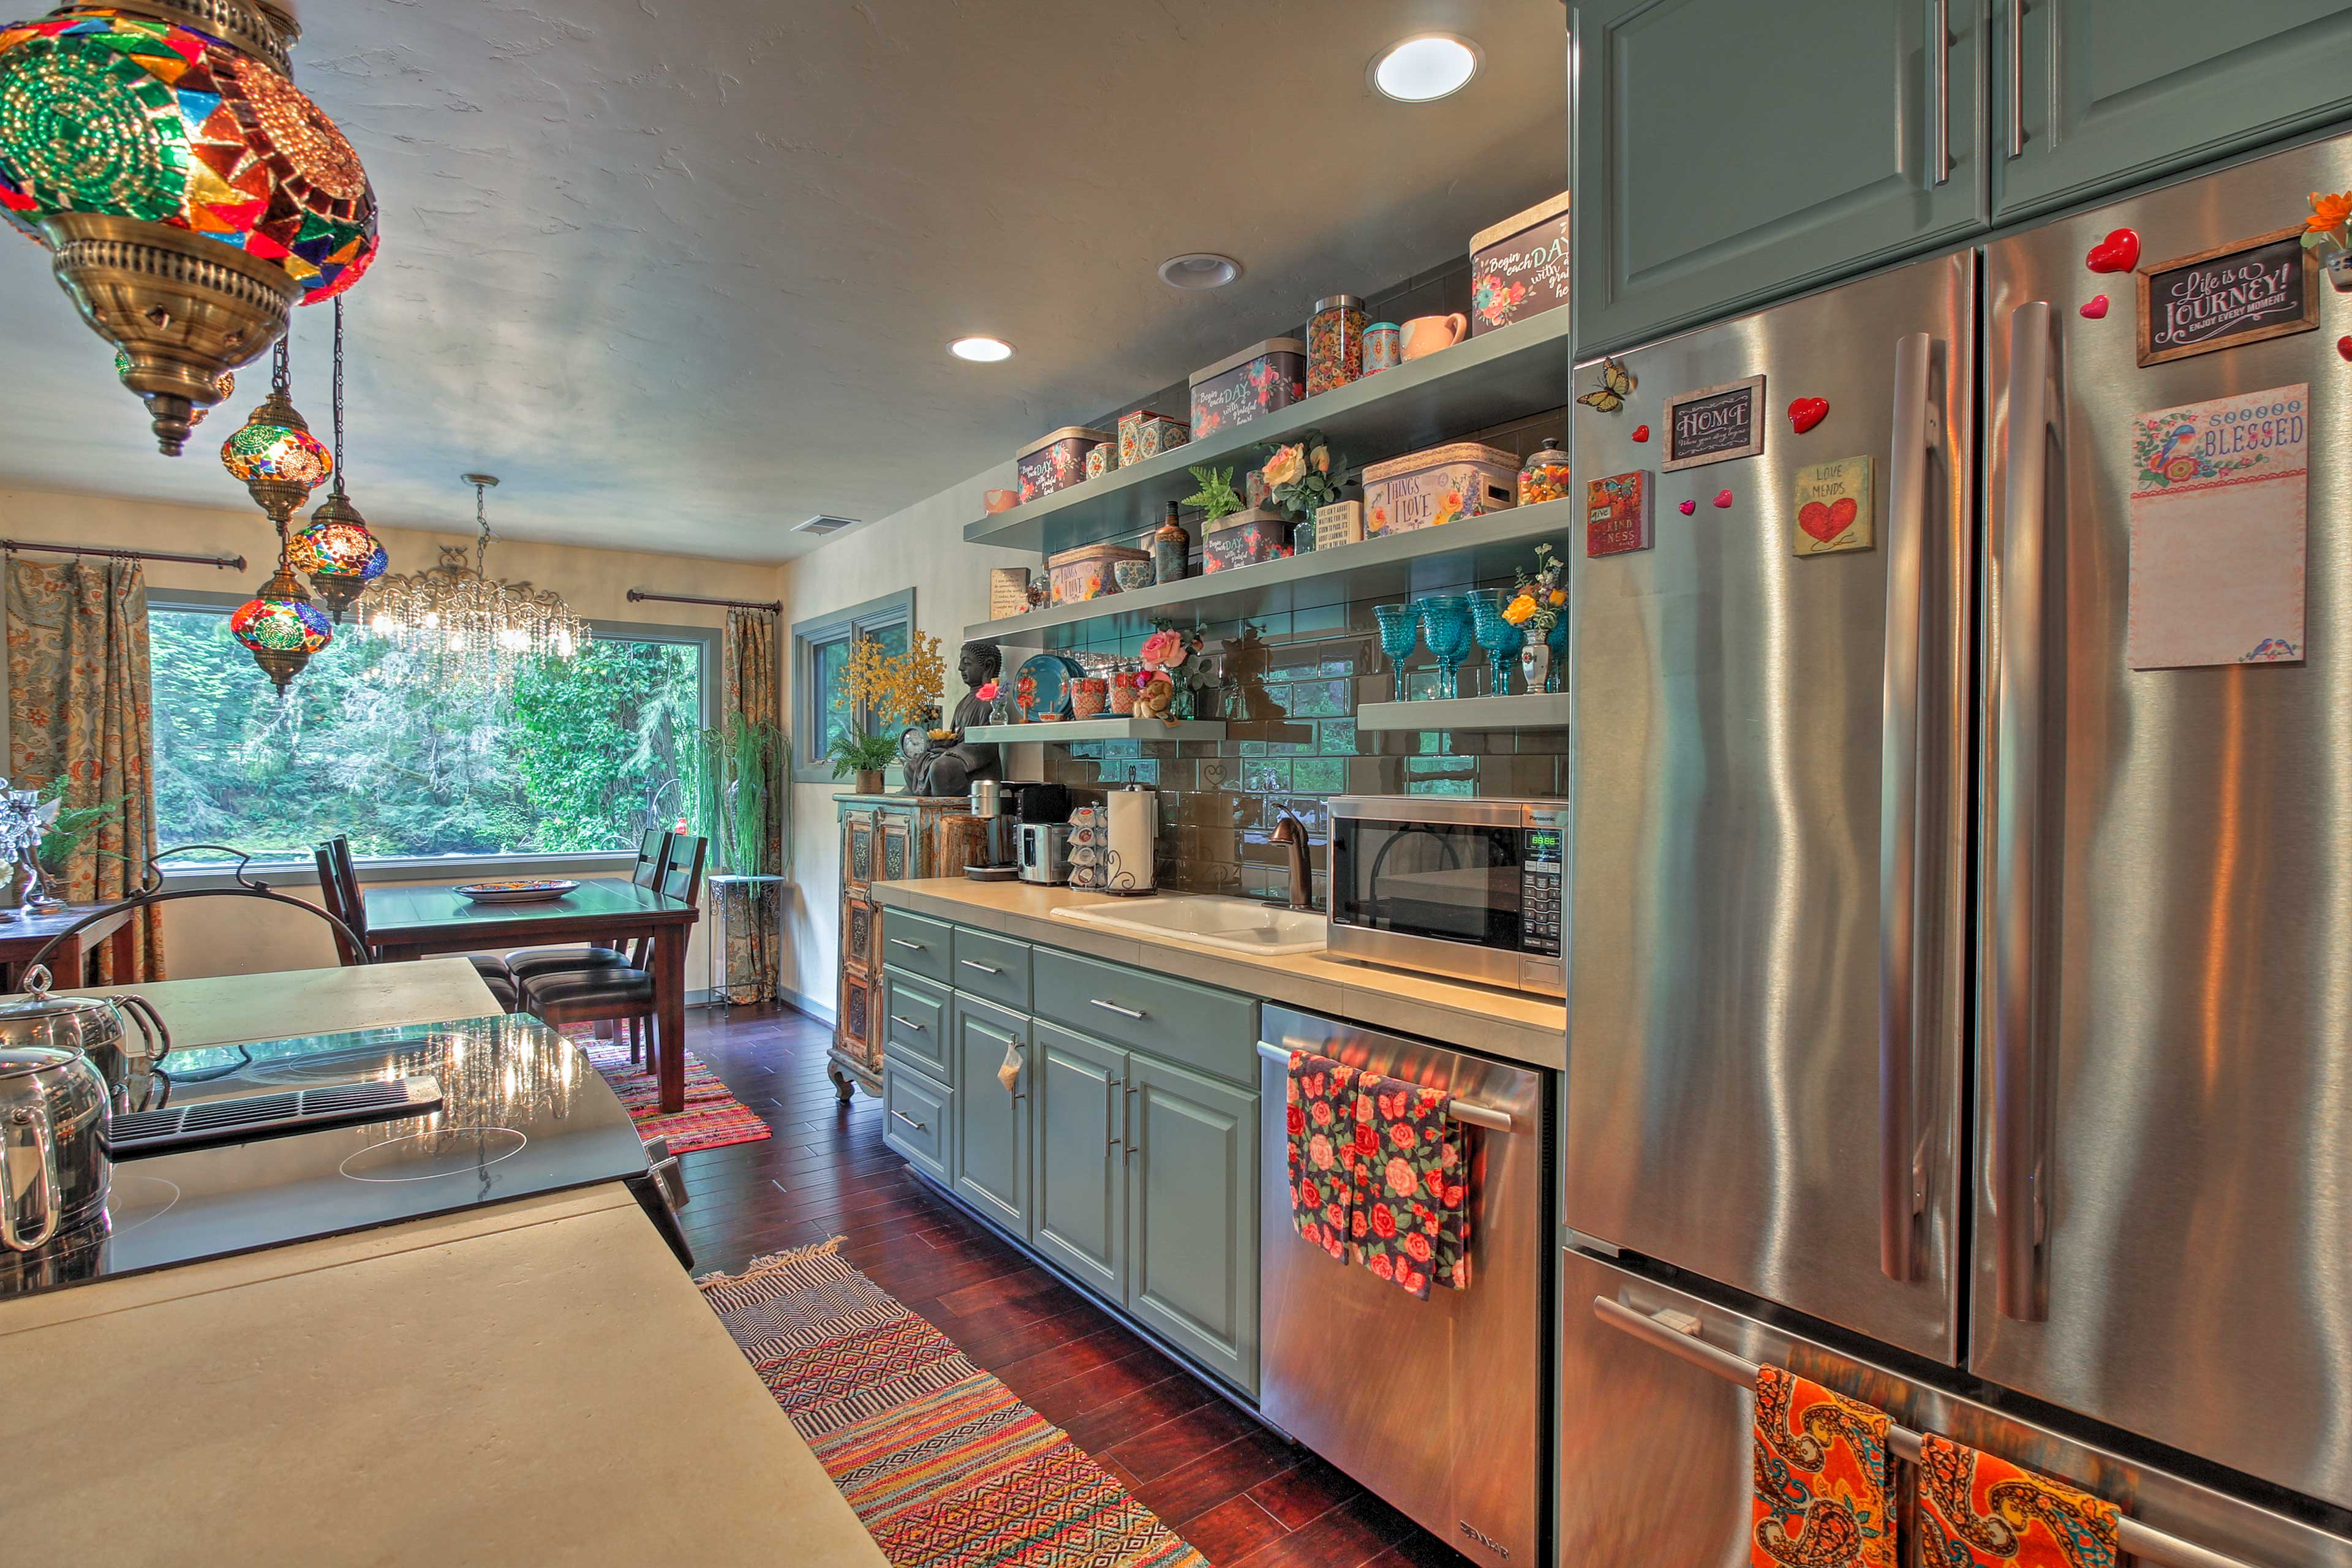 Impress your partner with your chef skills in the fully equipped kitchen.